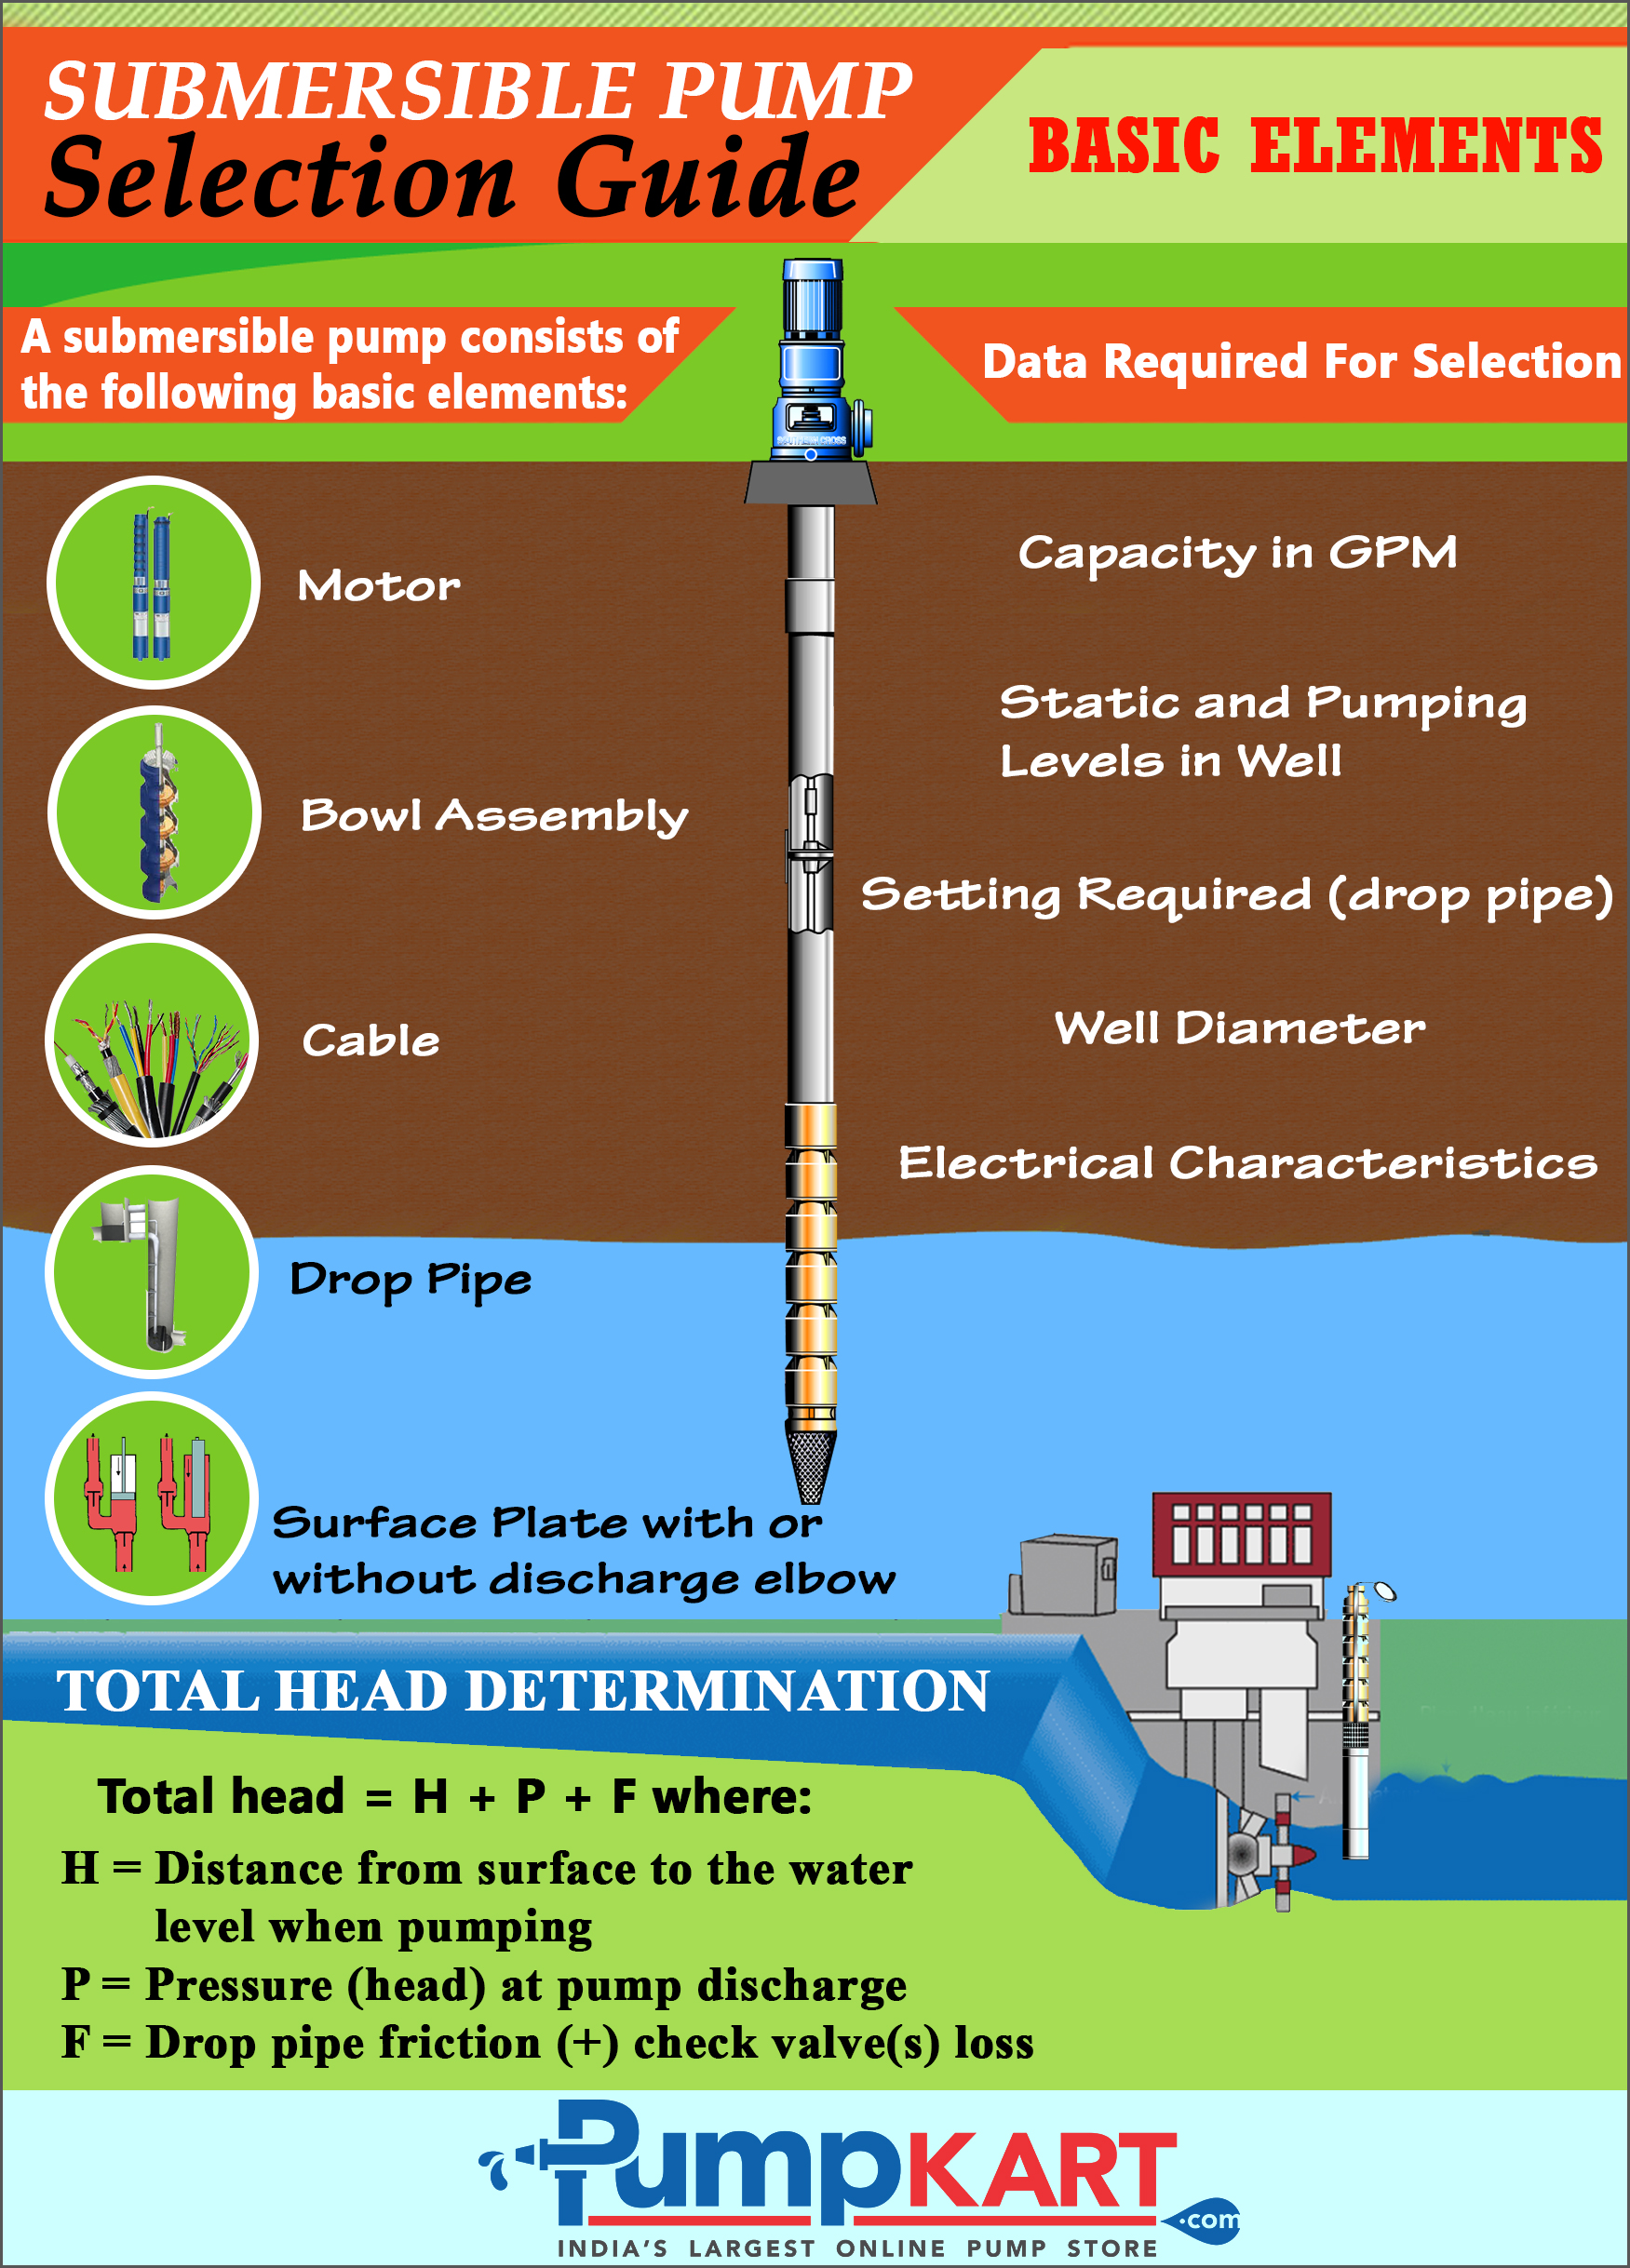 New submersible pump selection guide